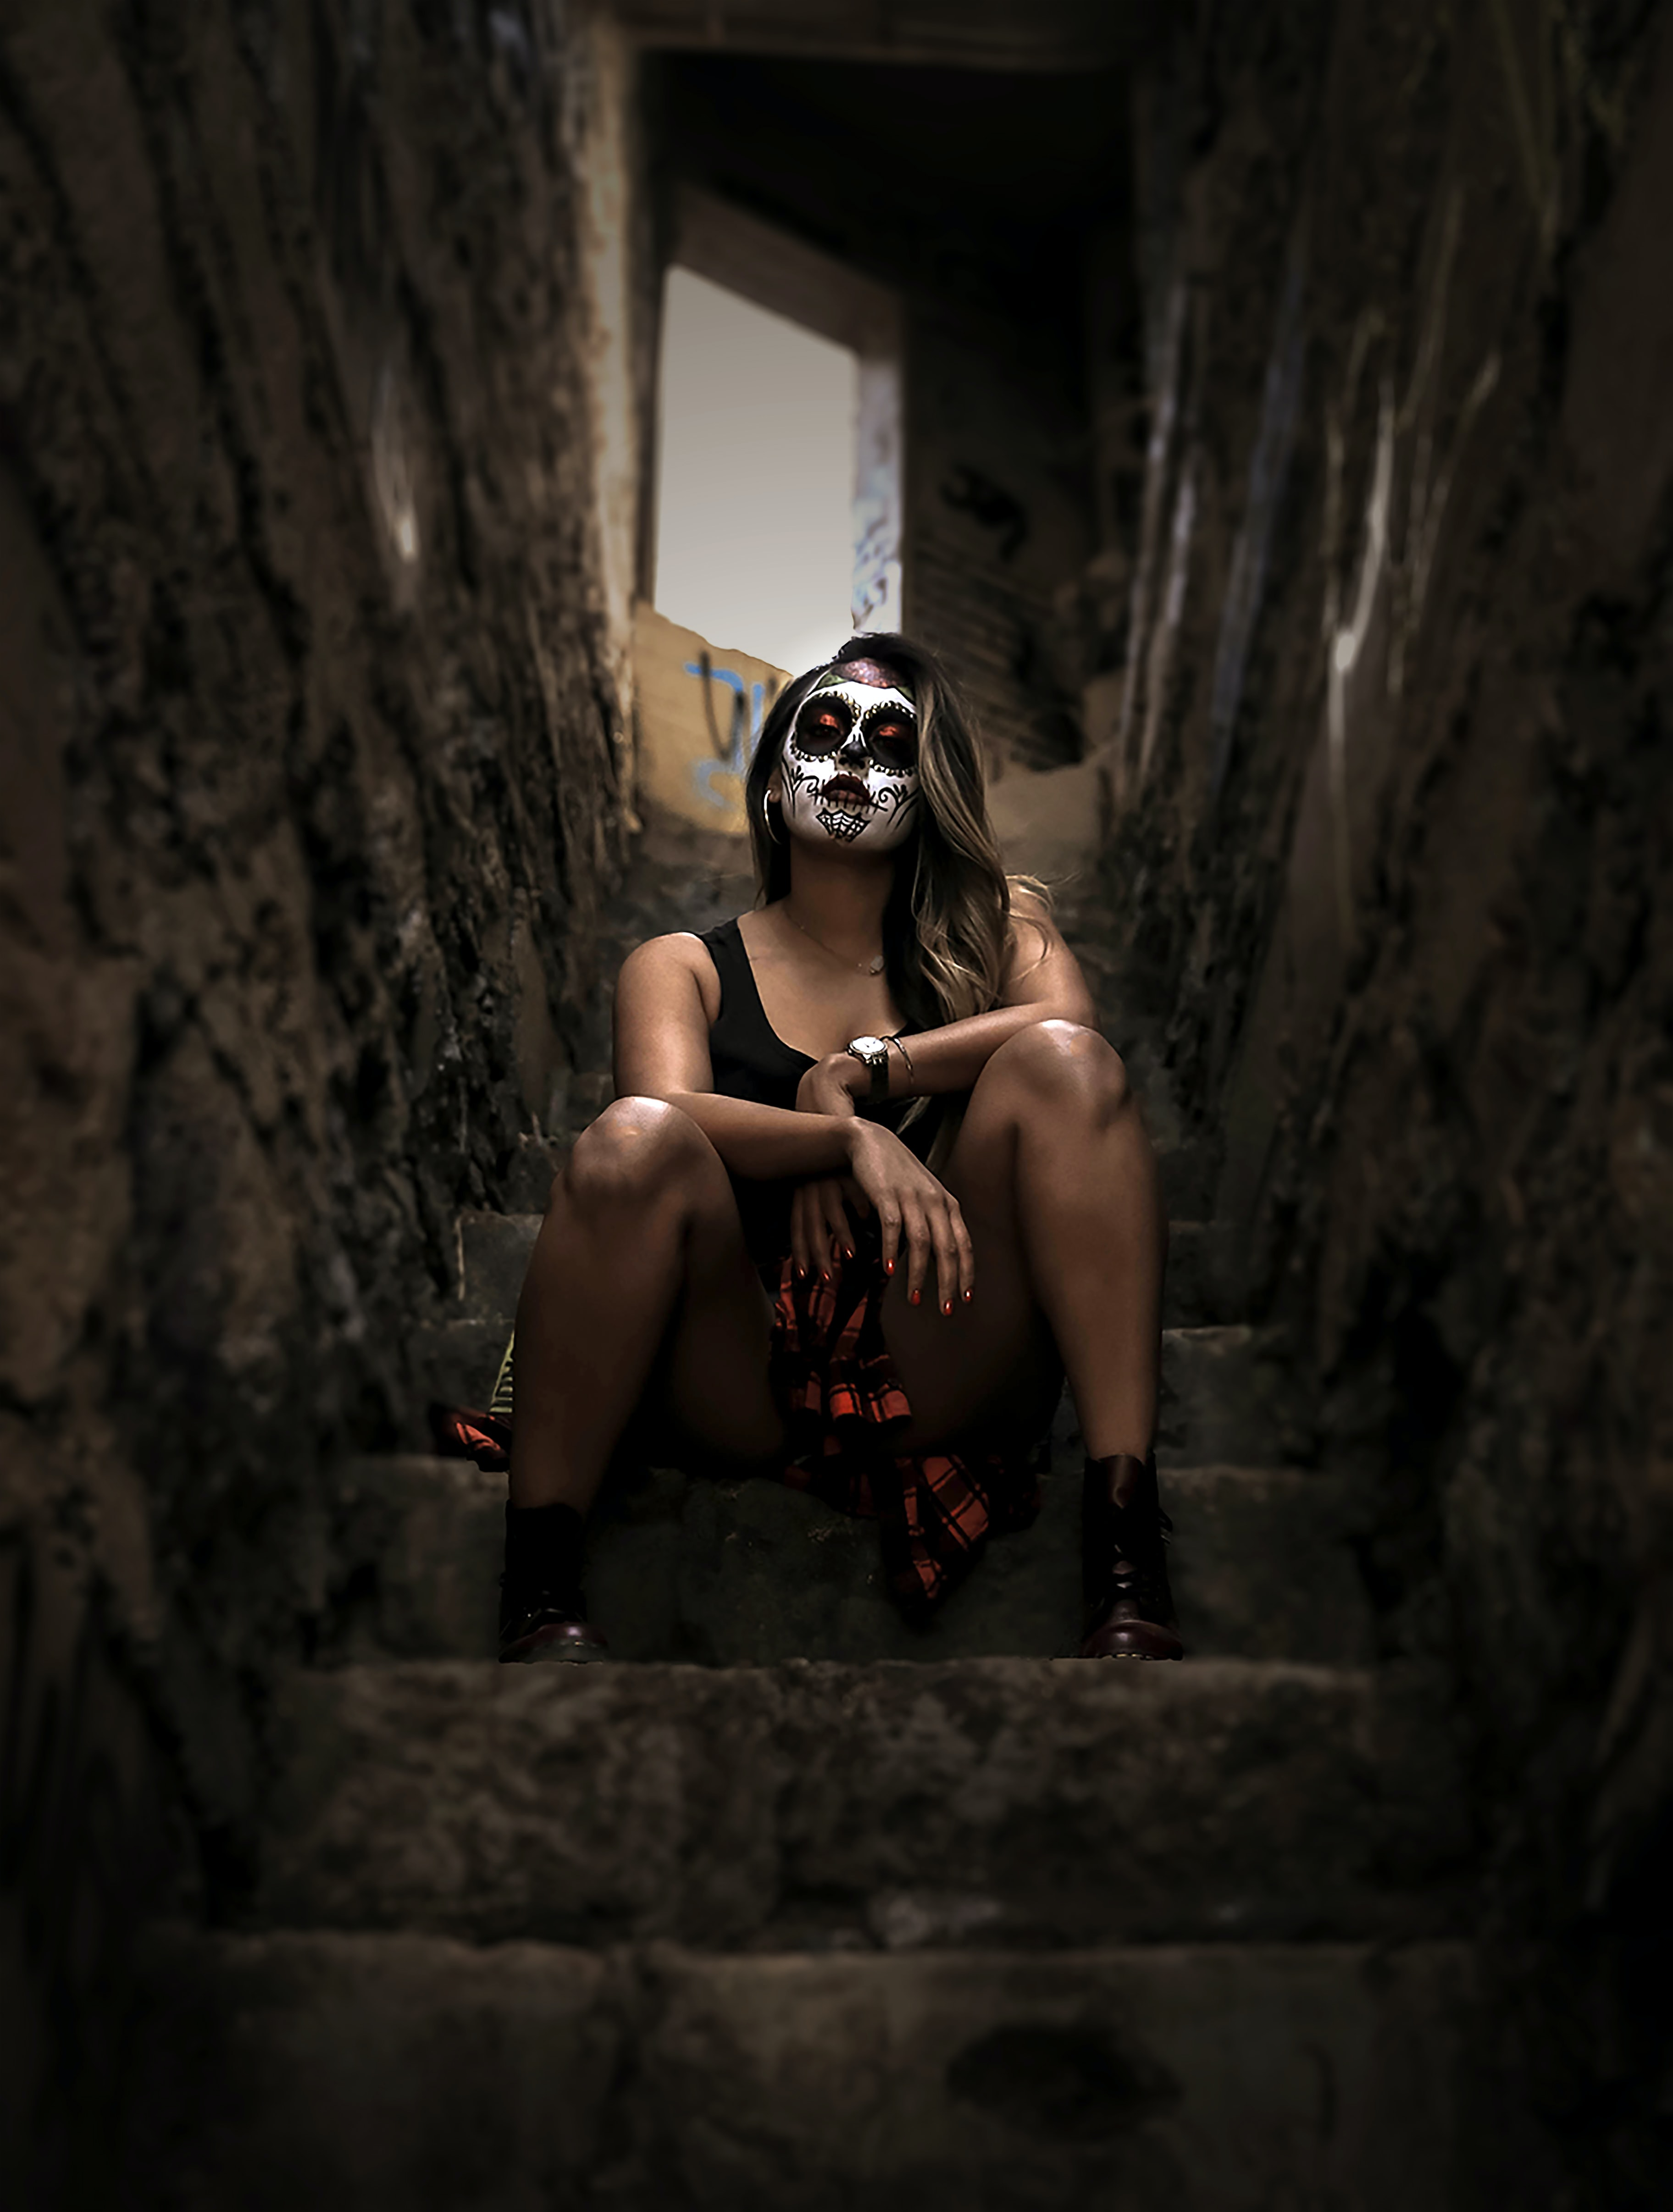 woman wearing skull face paint sitting on stairs